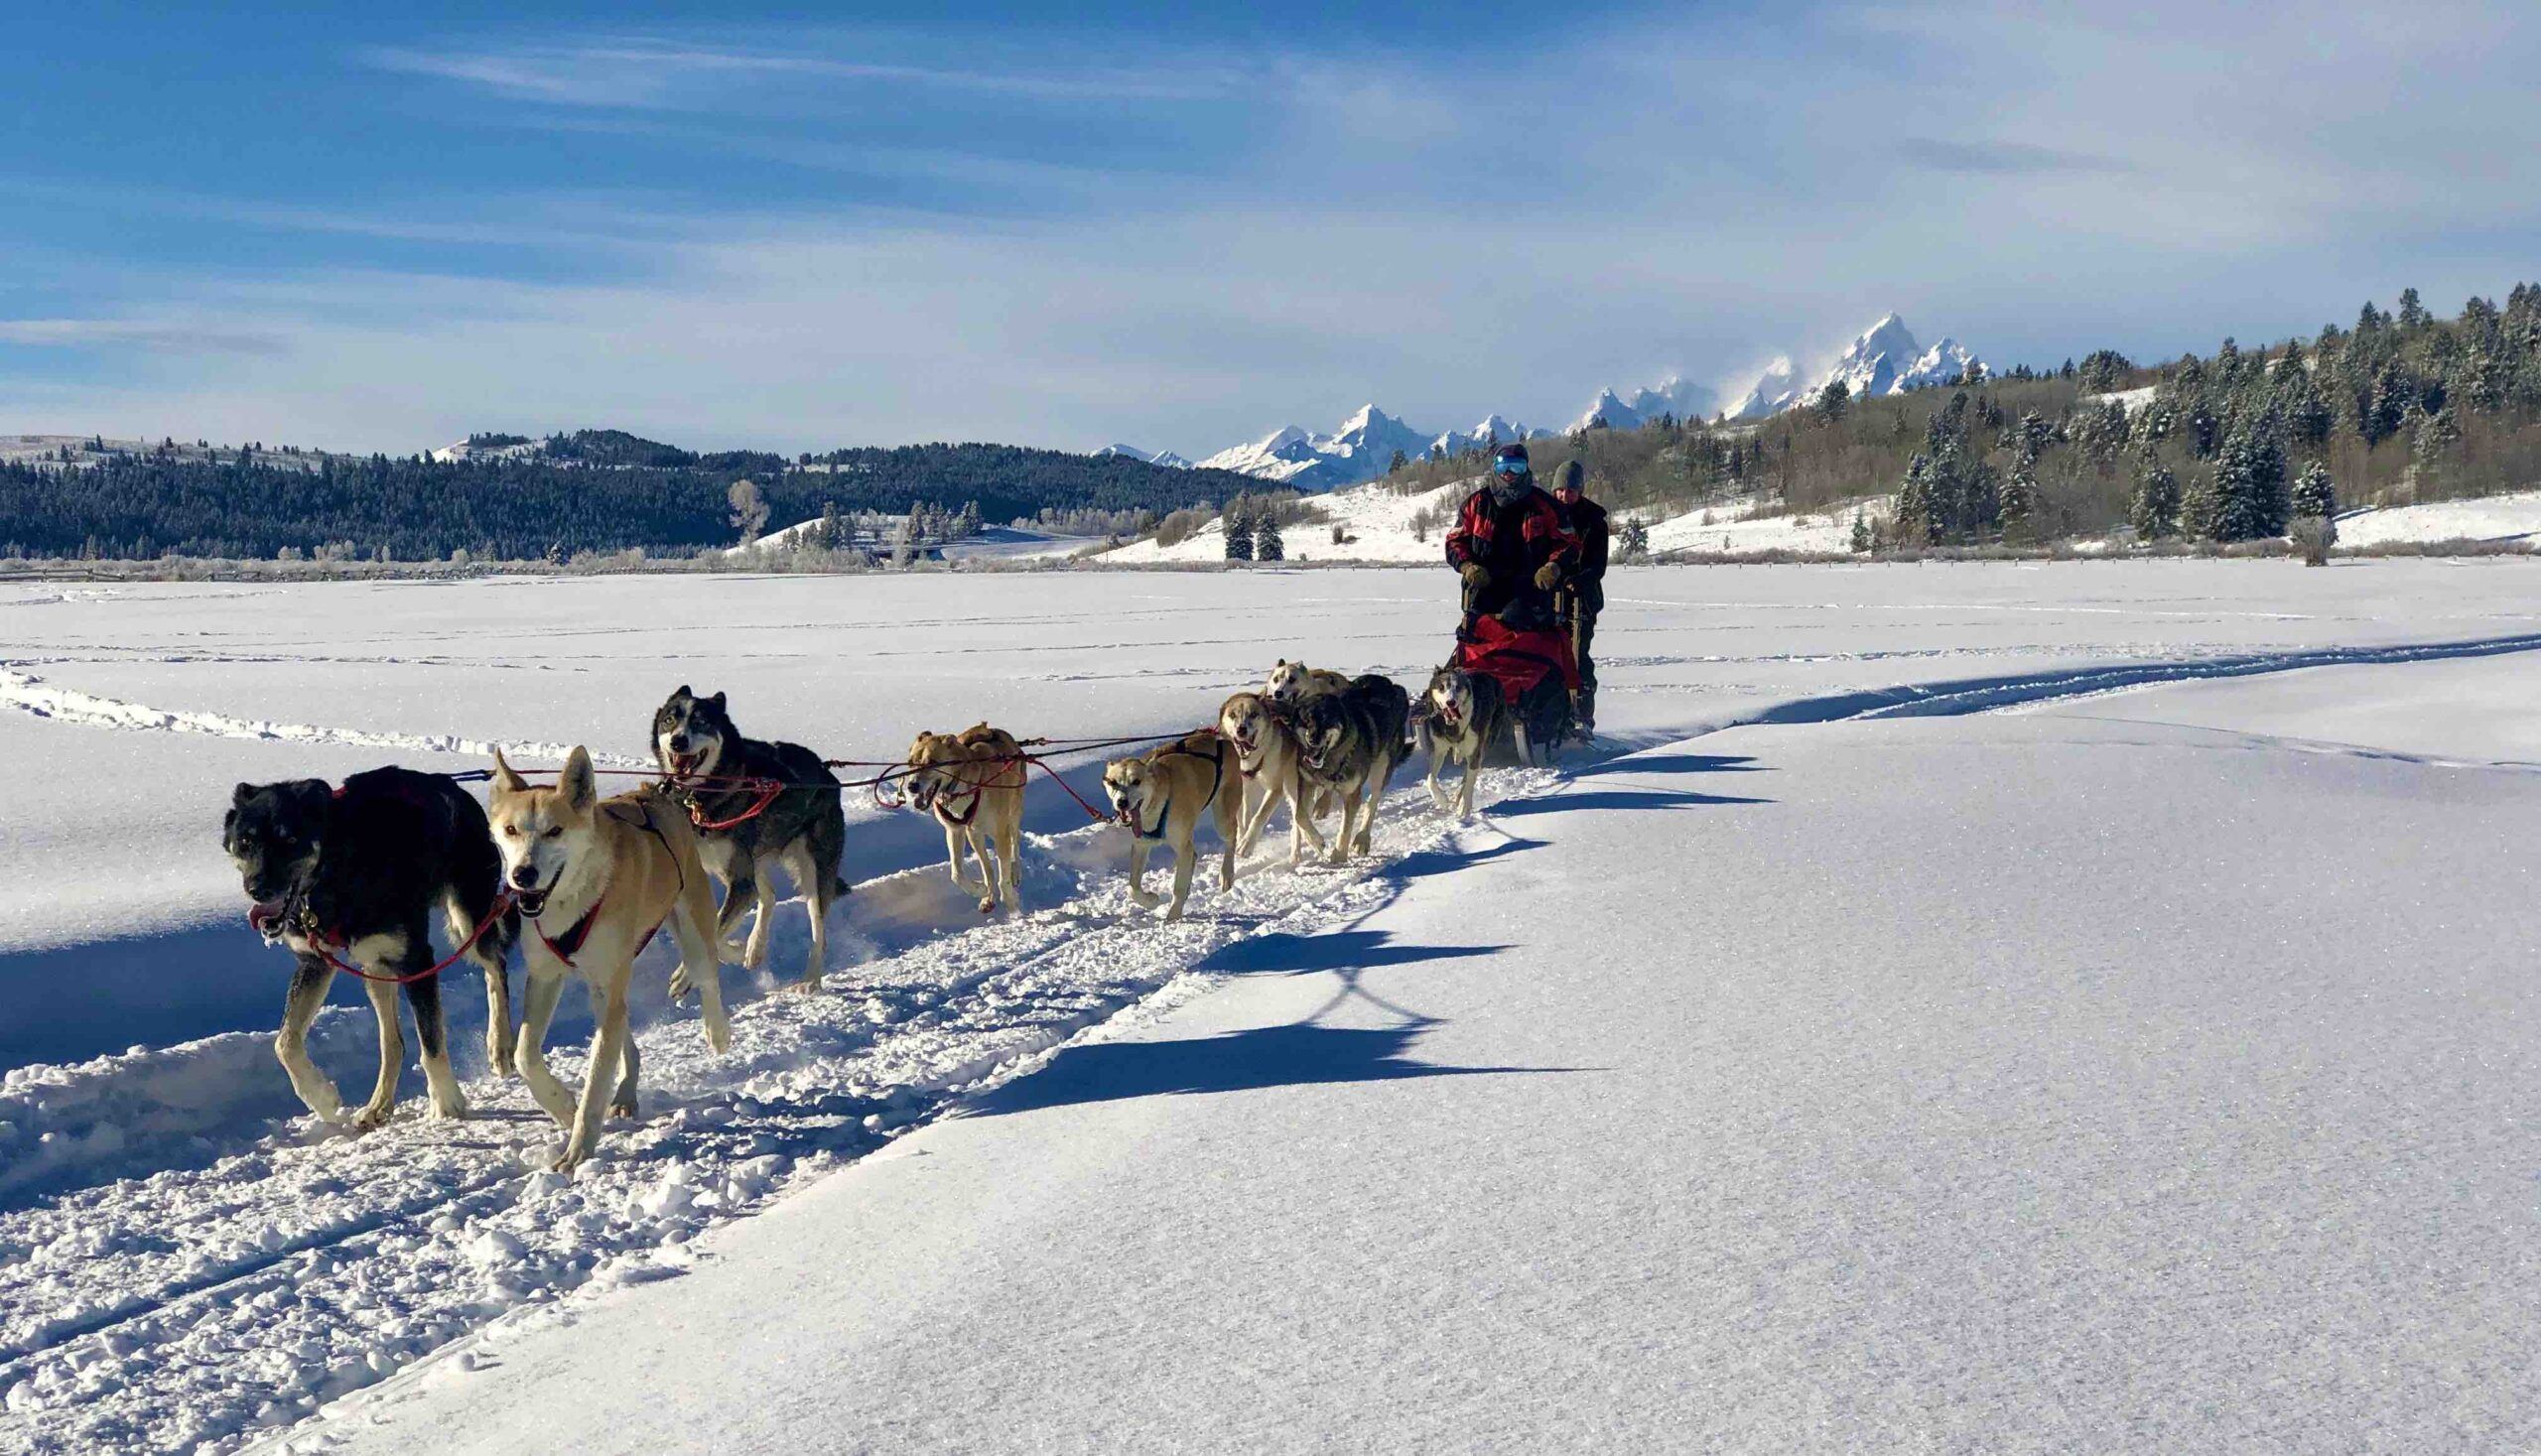 Snowmobile 1 – picture of dogsledding